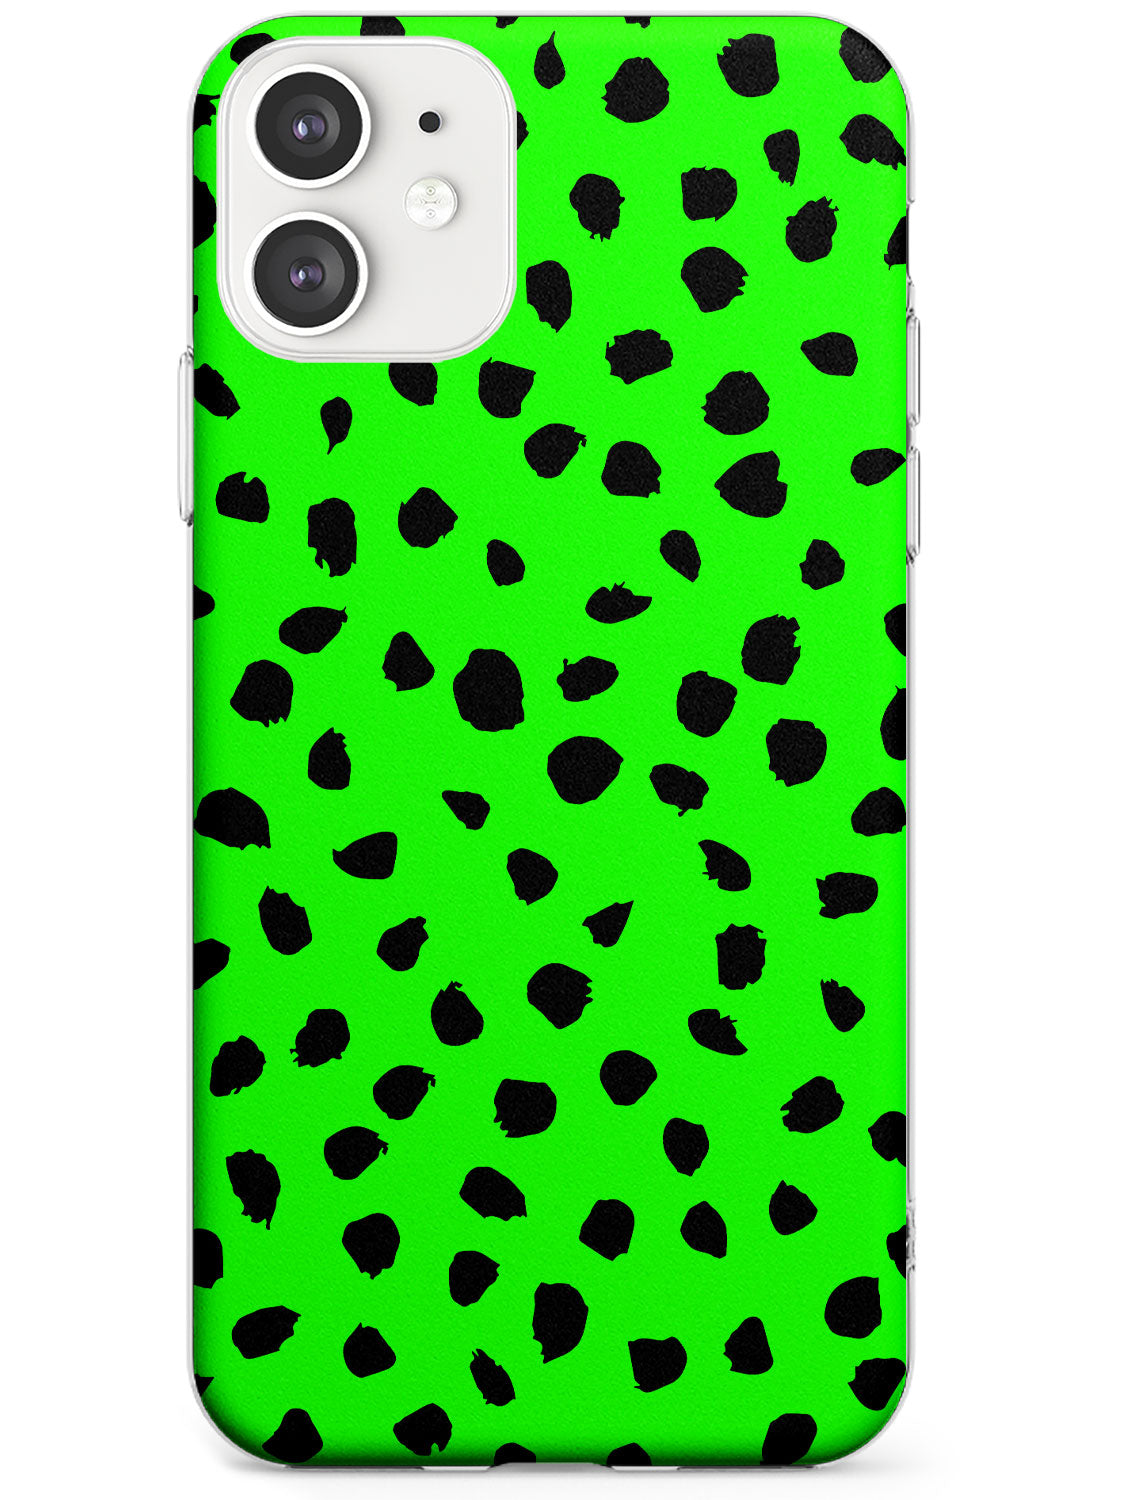 Black & Lime Green Dalmatian Polka Dot Spots iPhone Case by Case Warehouse ®